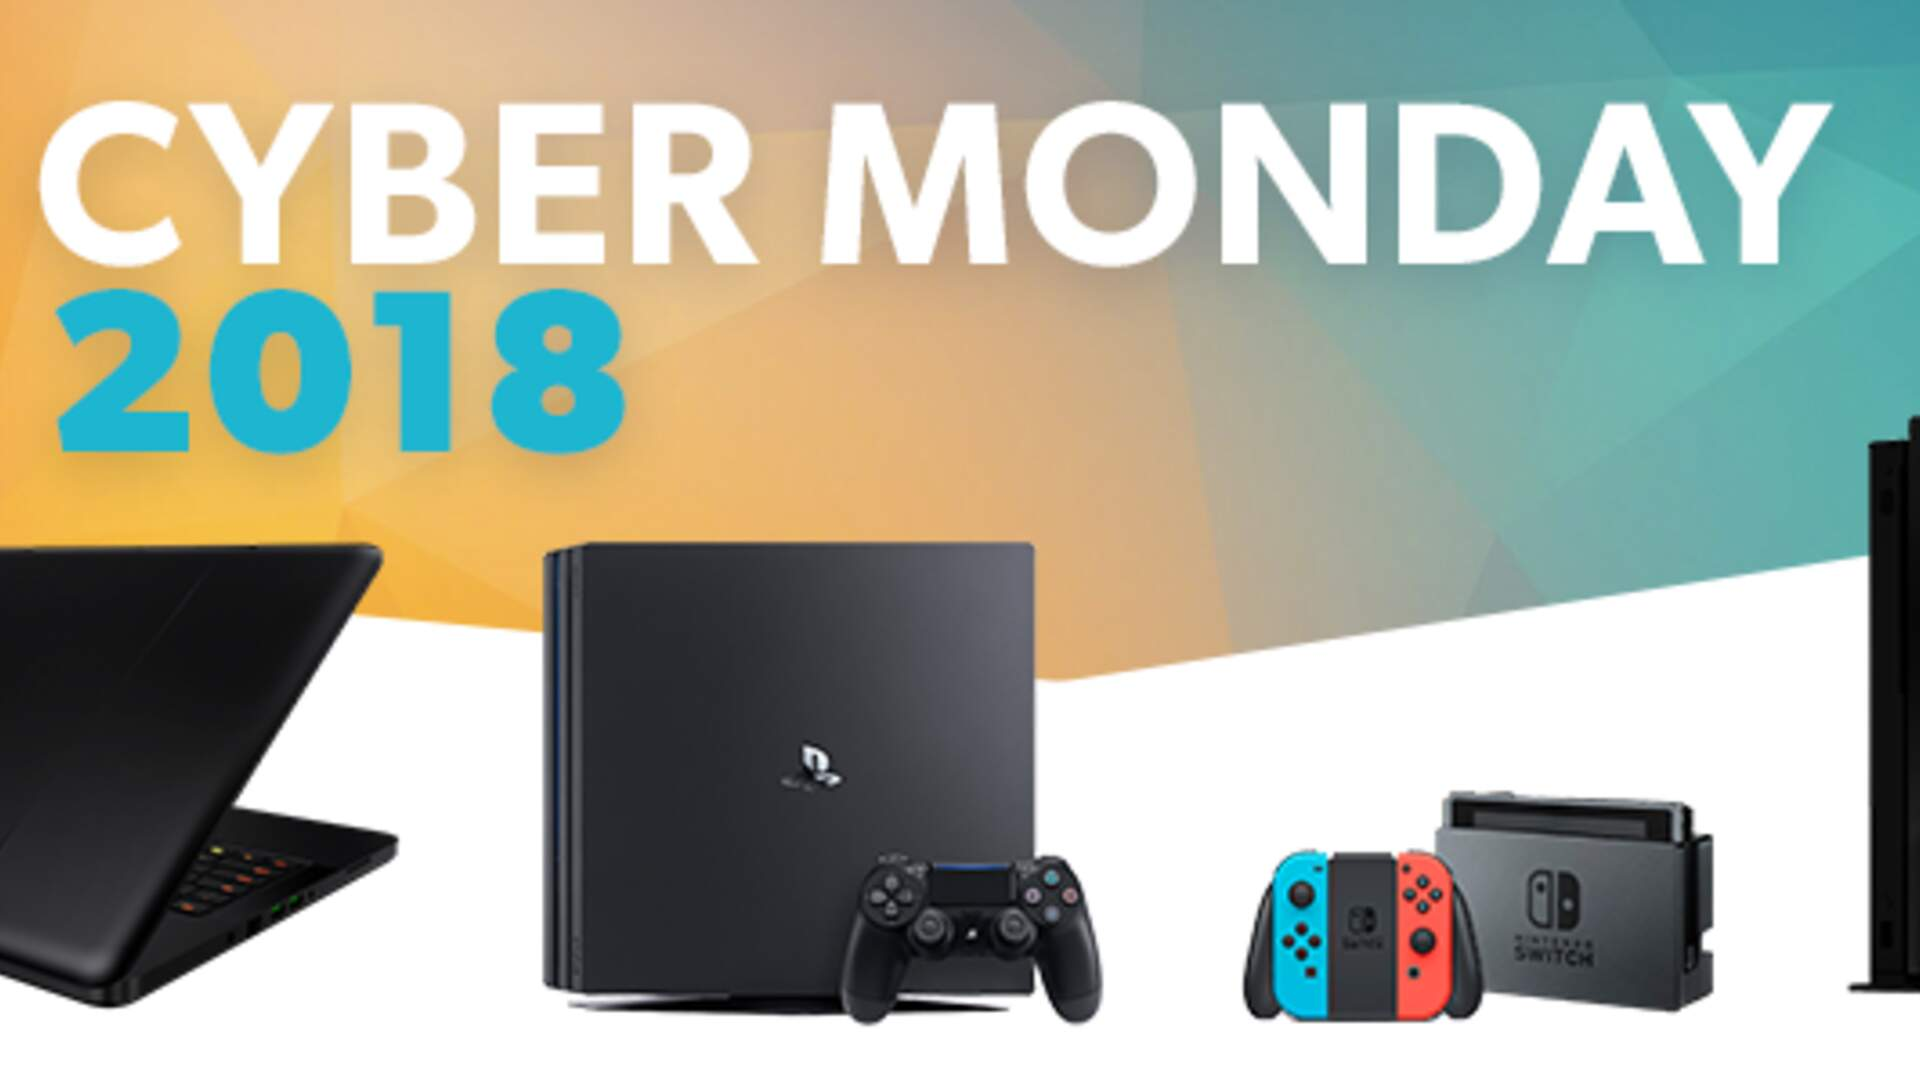 Cyber Monday Video Game Deals Roundup All The Best Ps4 Xbox One Nintendo Switch And Pc Cyber Monday Deals Usgamer